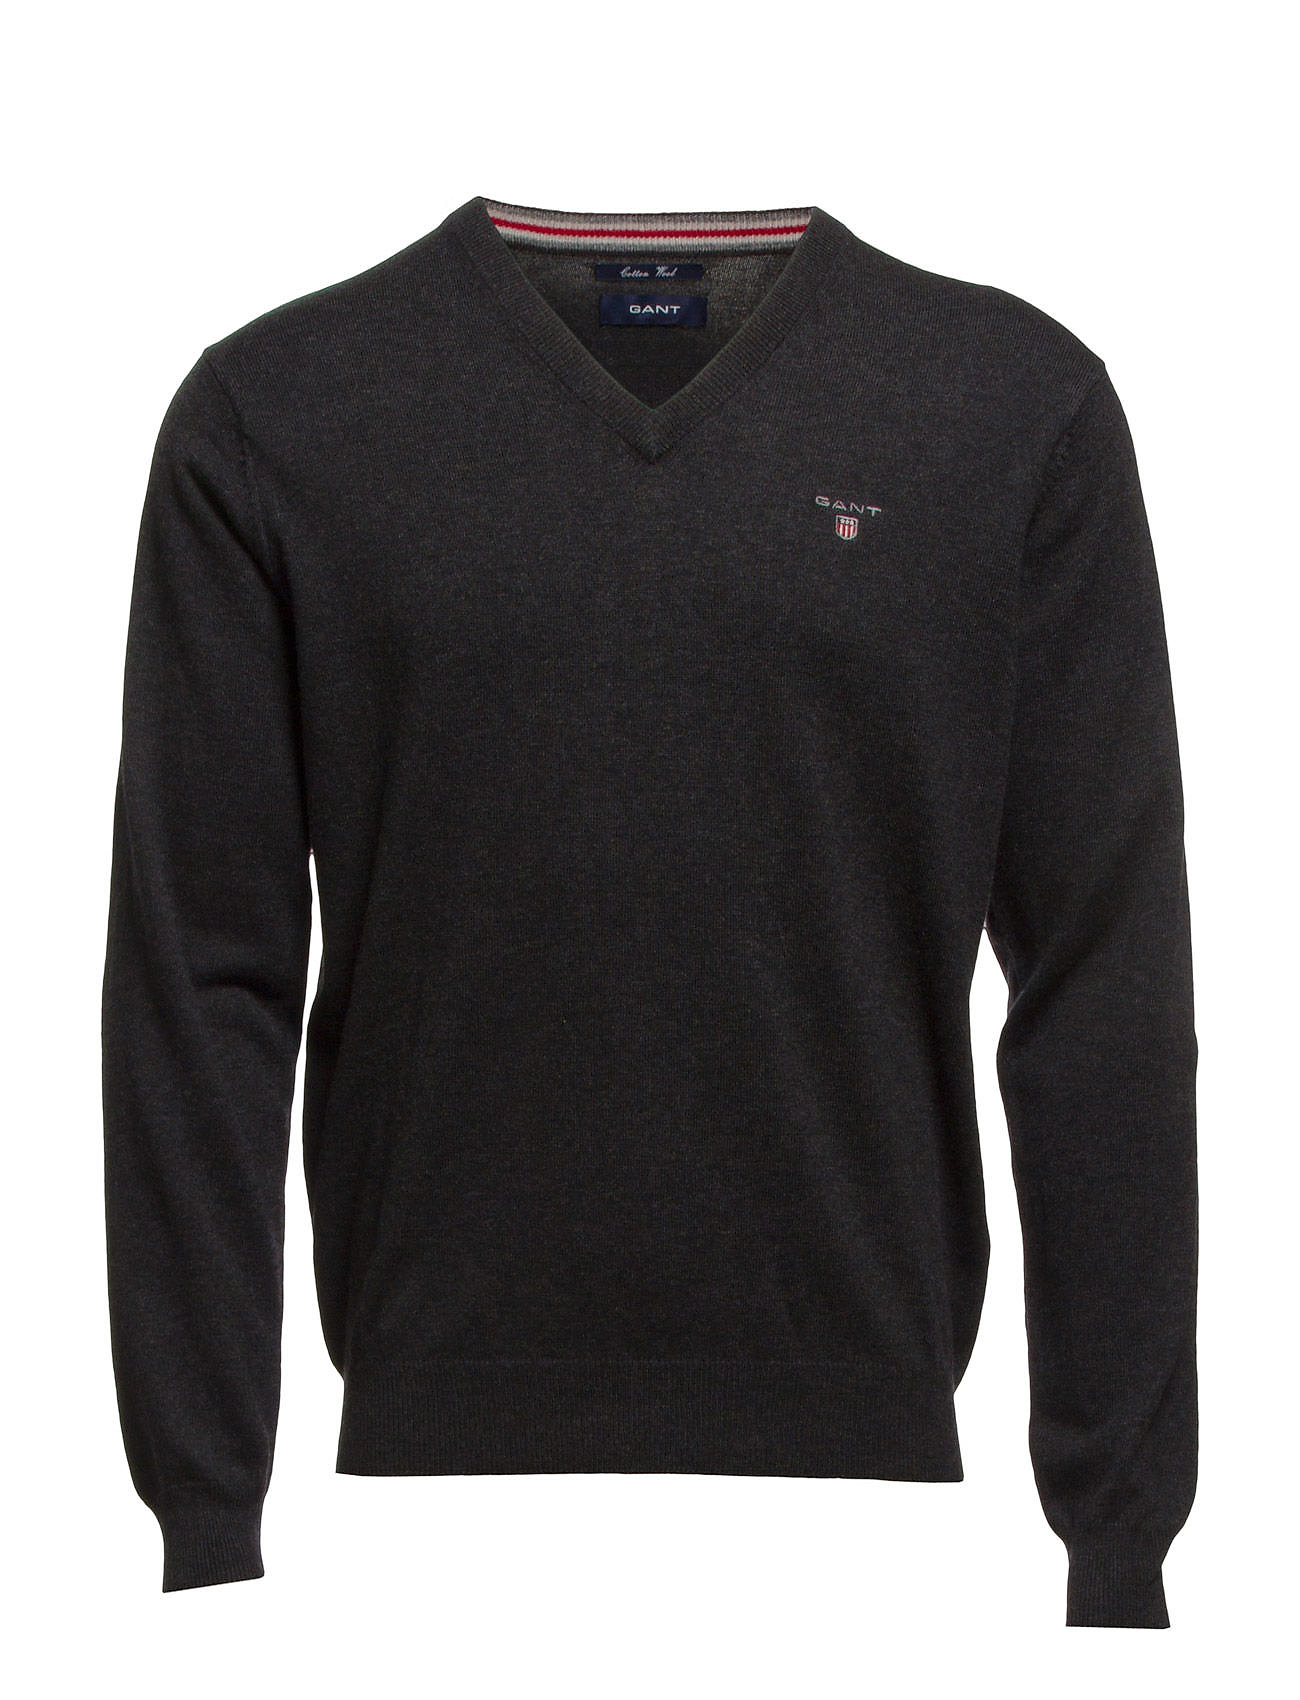 Gant COTTON WOOL V-NECK - DK CHARCOAL MELANGE